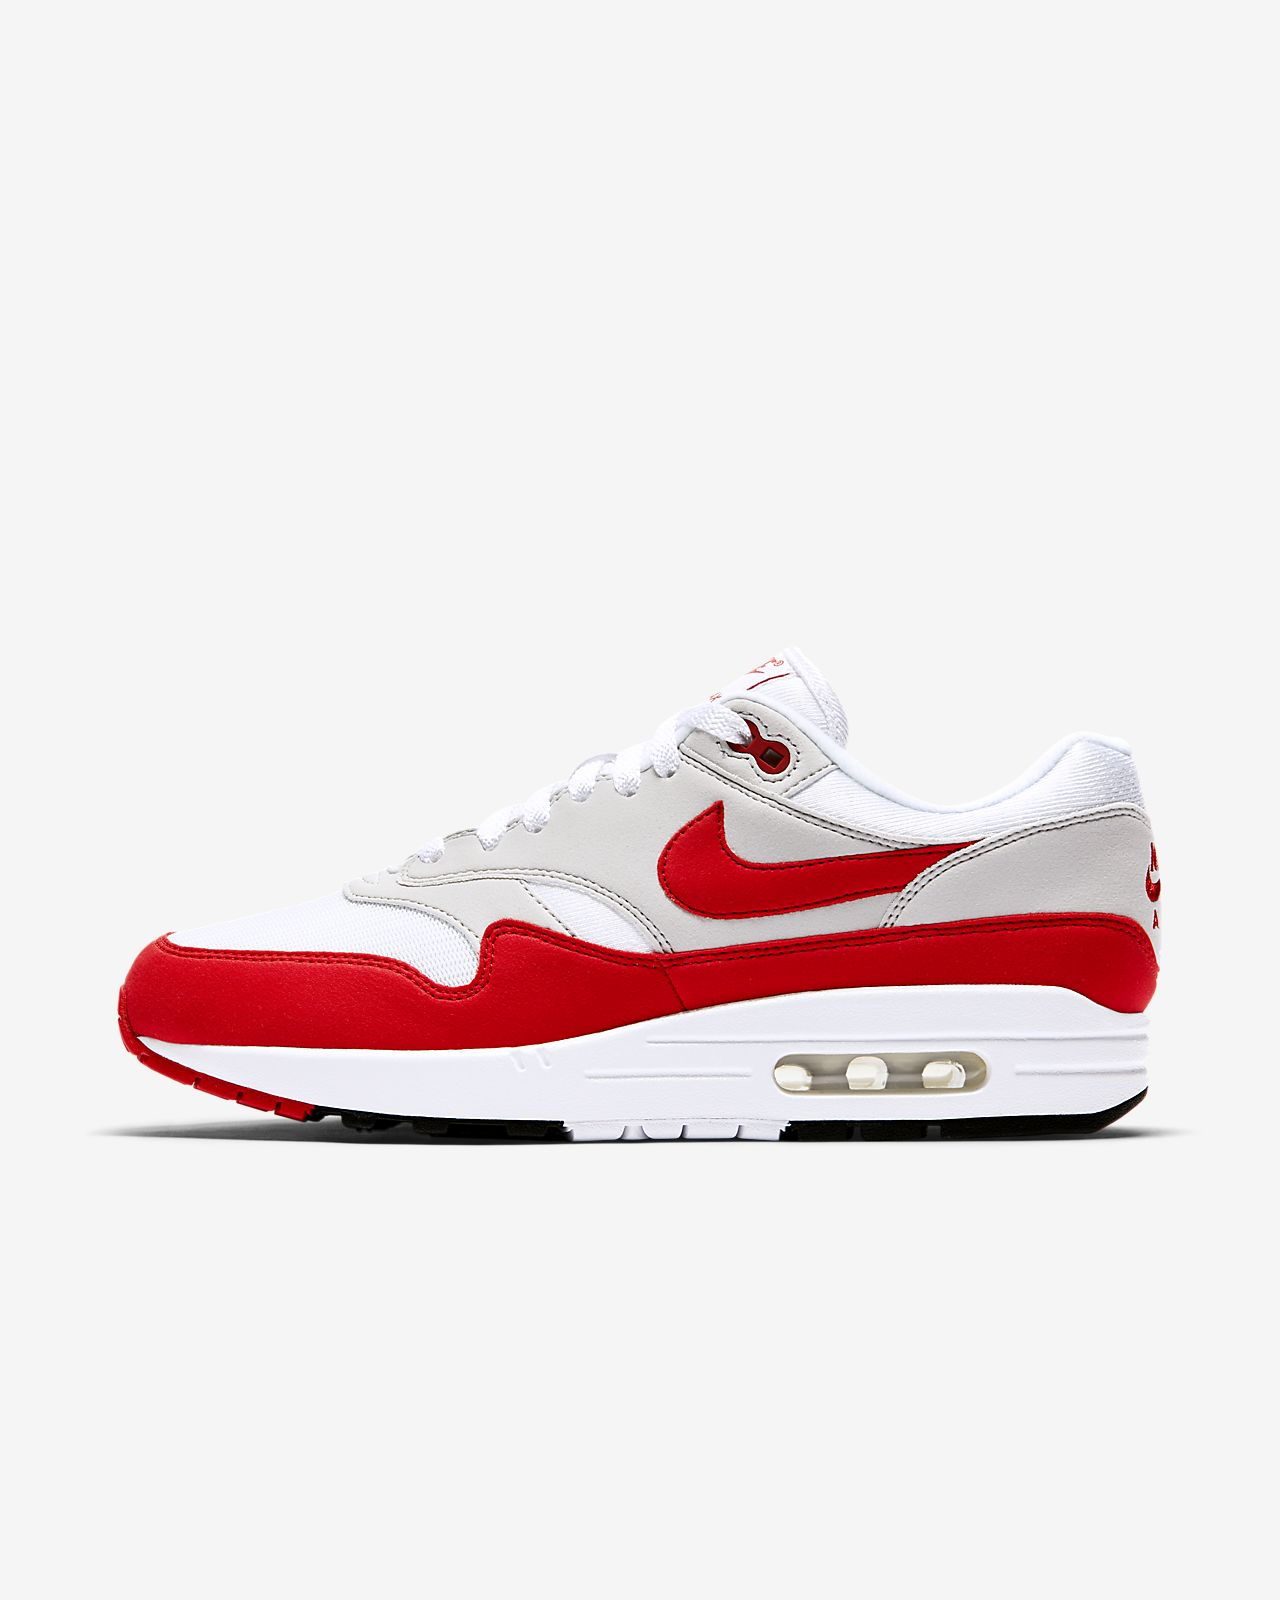 nike air max 1 anniversary men's shoe nz